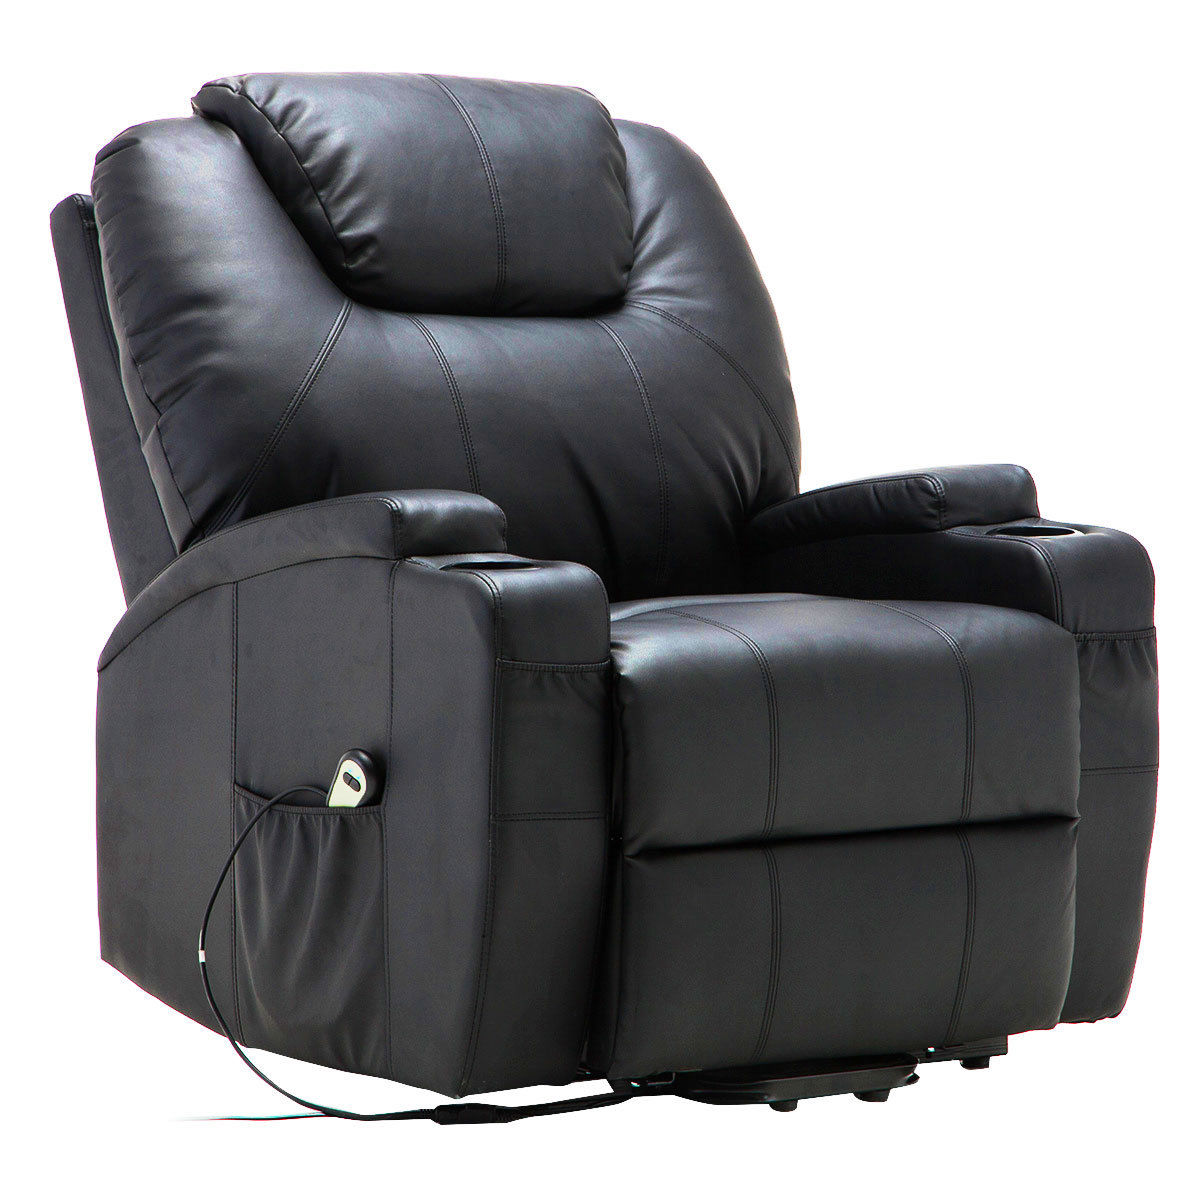 motorized easy chair folding camping chairs costco costway electric lift power recliner heated massage sofa lounge w remote control walmart com